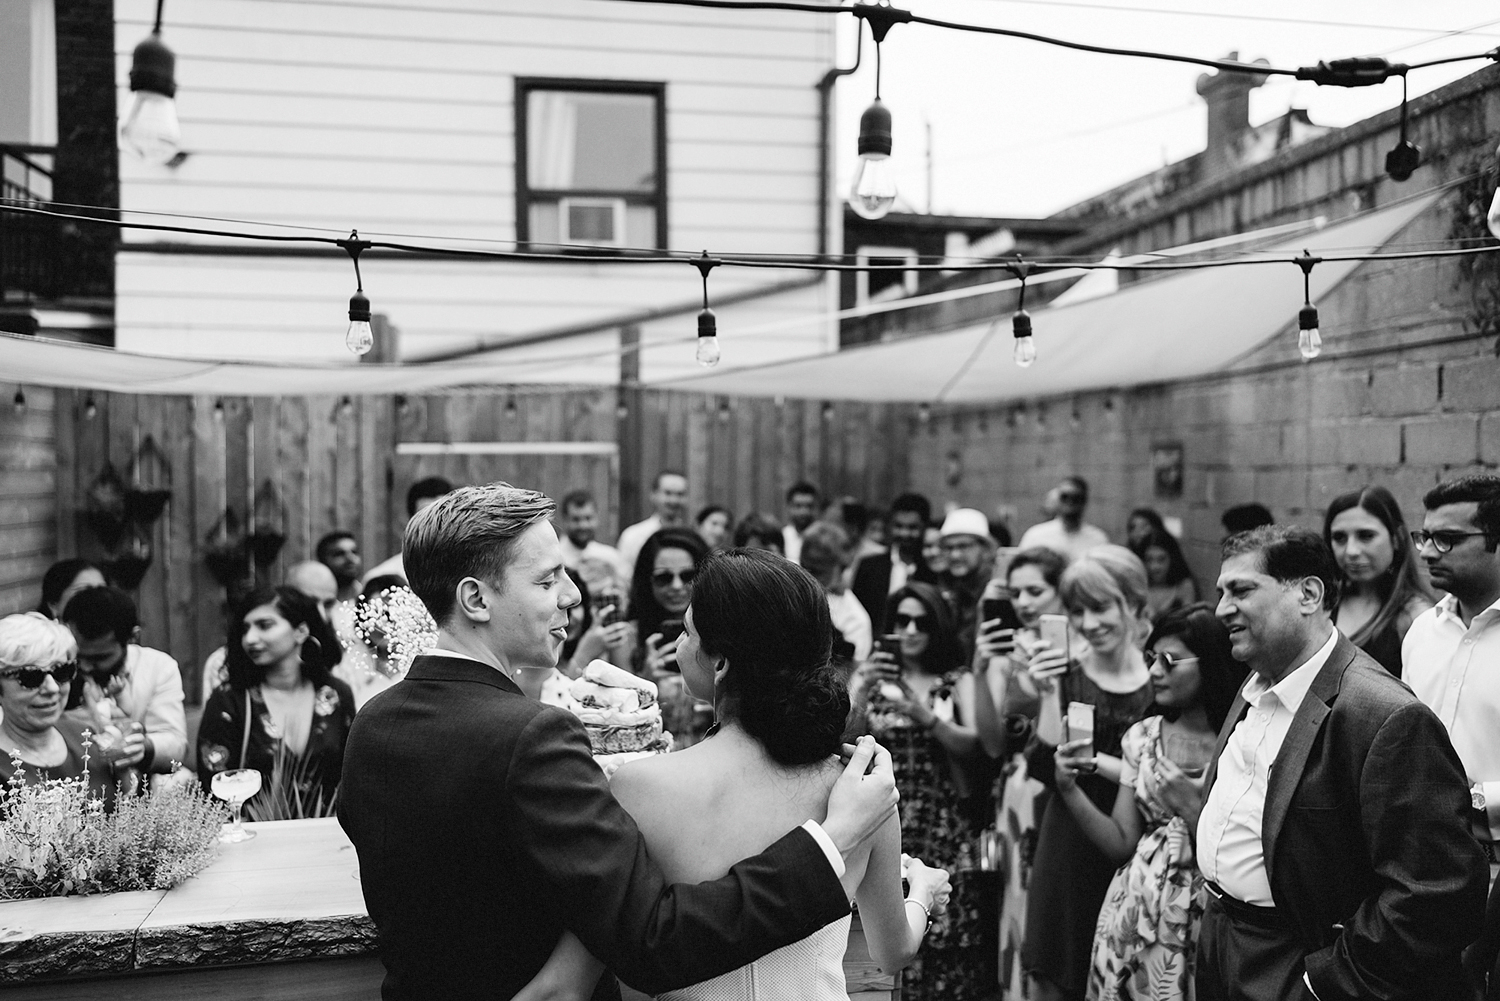 urban-downtown-toronto-wedding-fat-pasha-torontos-best-wedding-photographer-3b-photography-film-photographer-analog-photography-ceremony-on-outdoor-patio-kodak-portra-800-bride-and-groom-vows-emotional-crying-bw.jpg